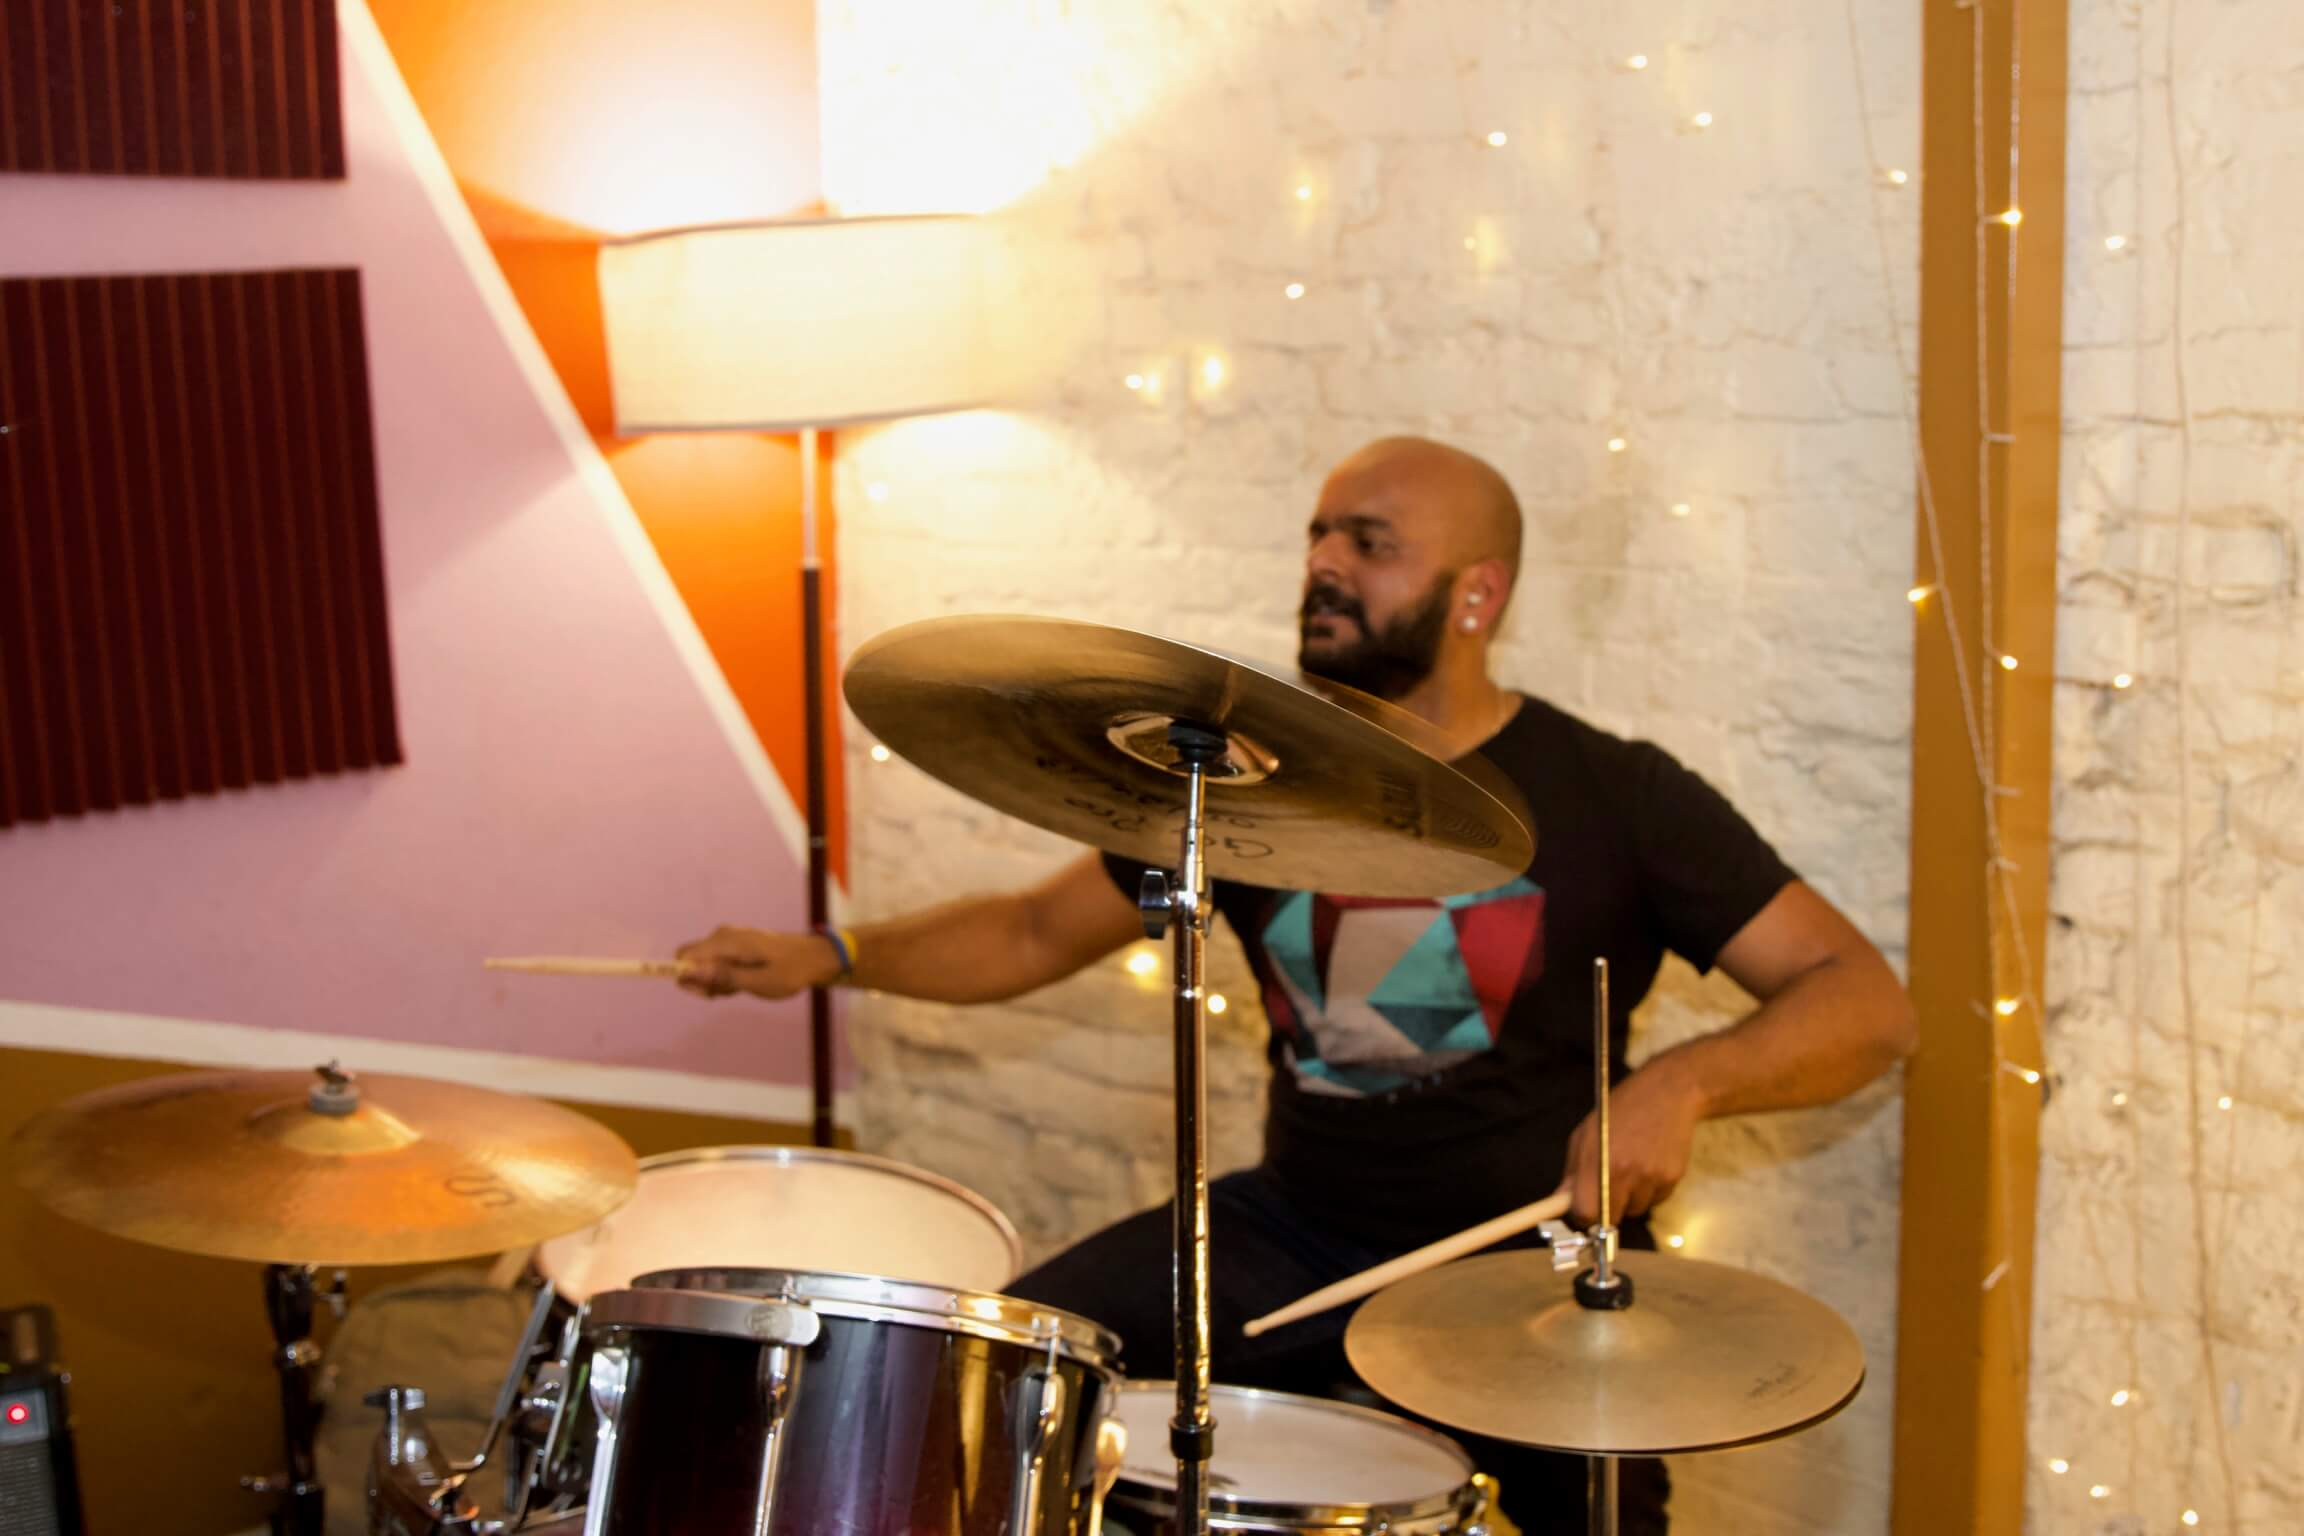 Swamy crushing the drums